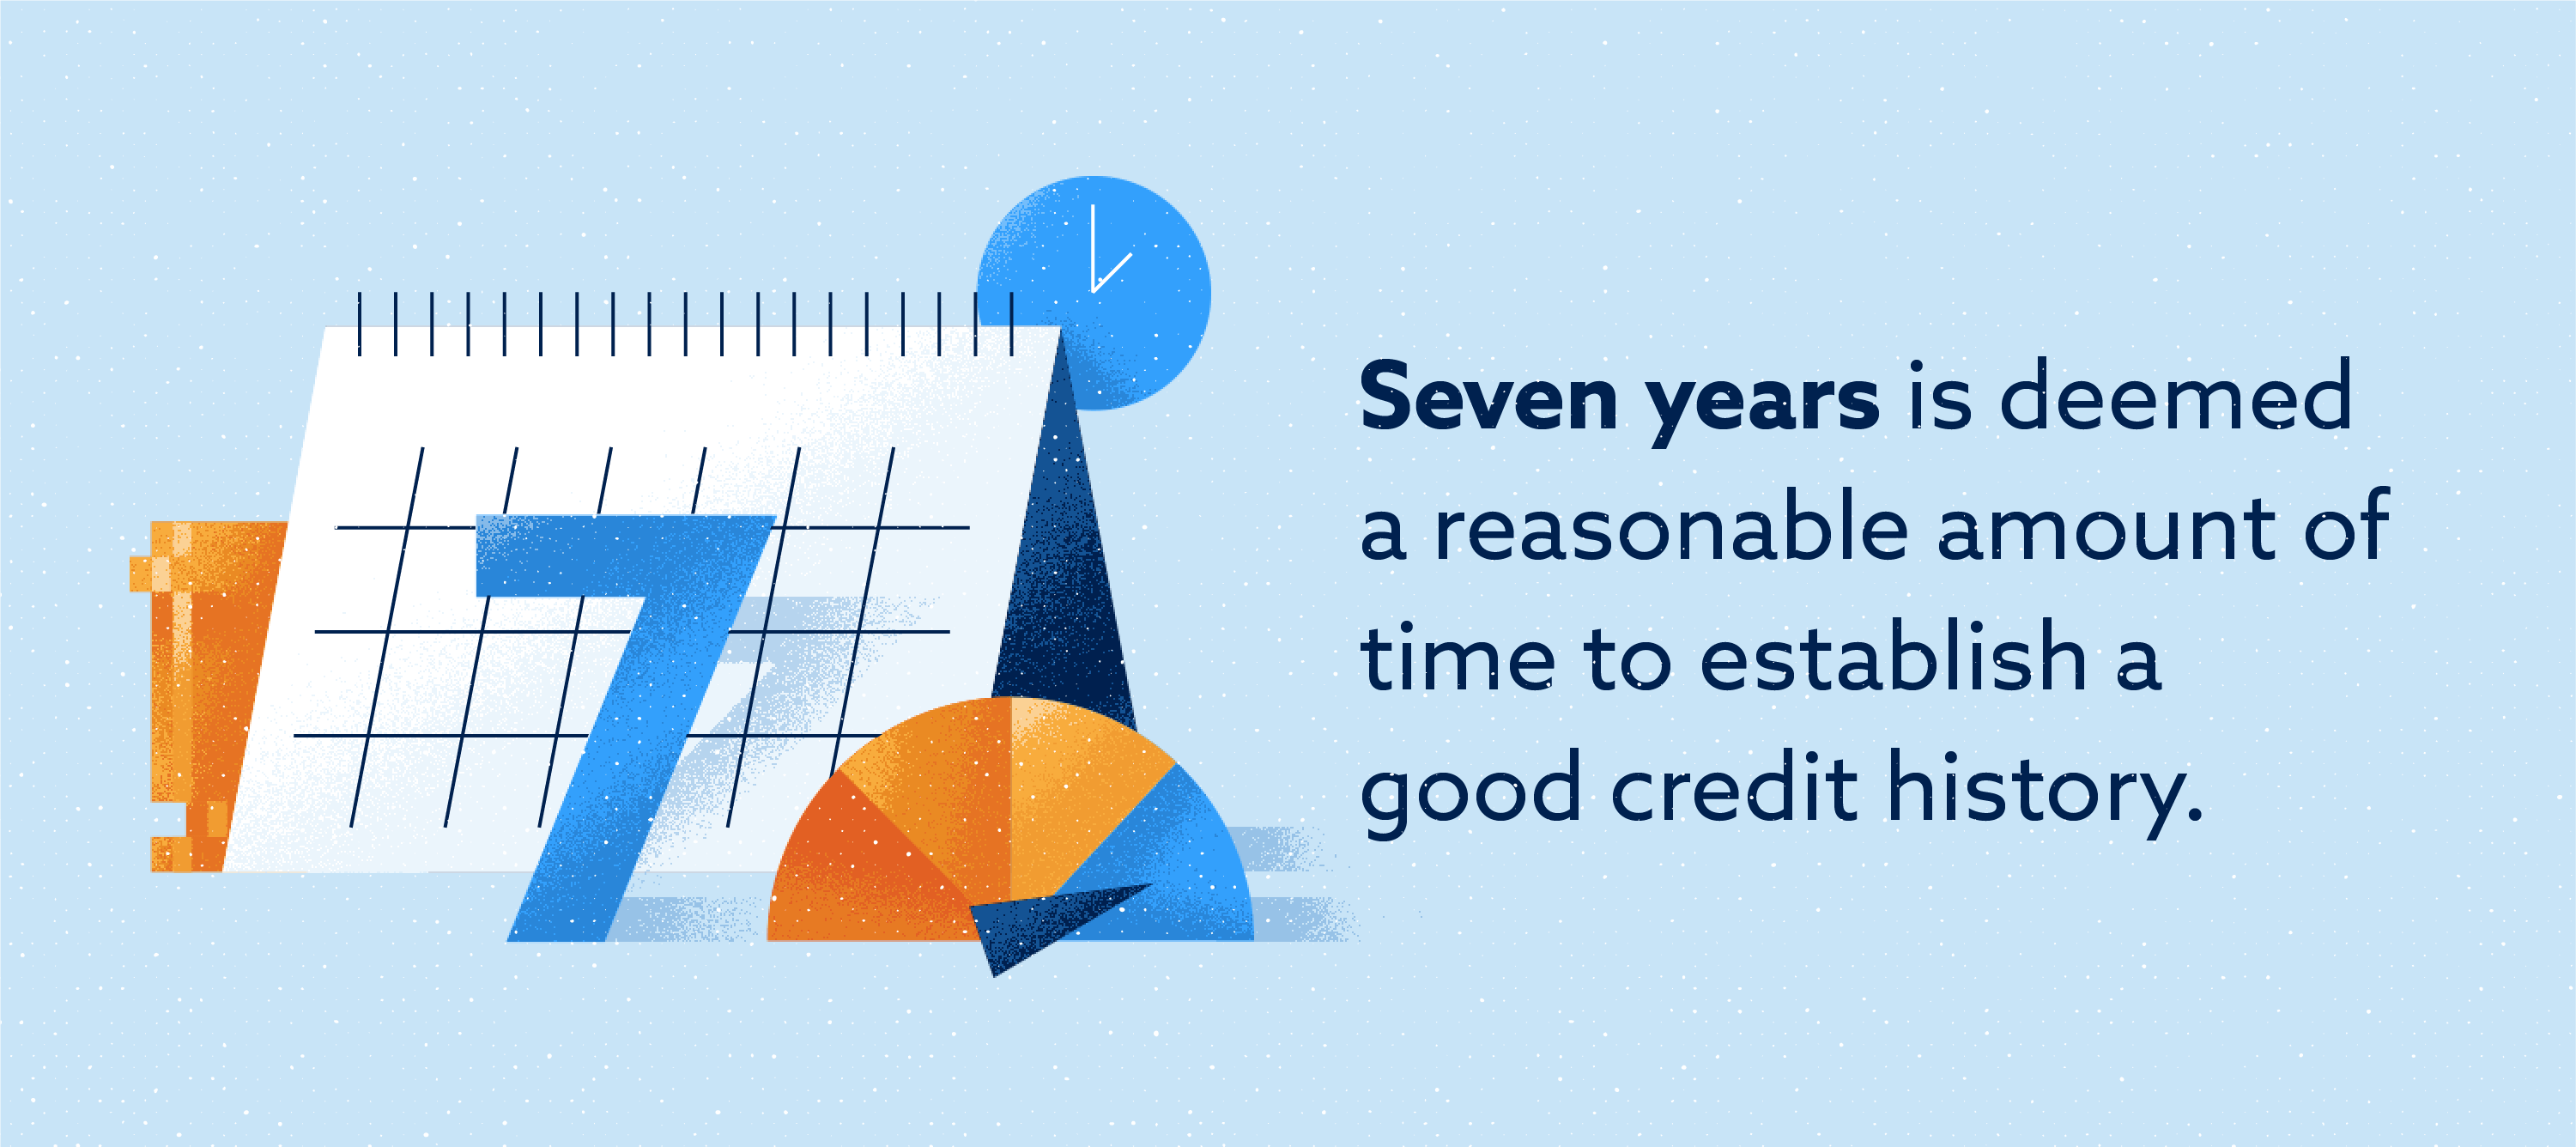 7-years-to-establish-good-credit-history